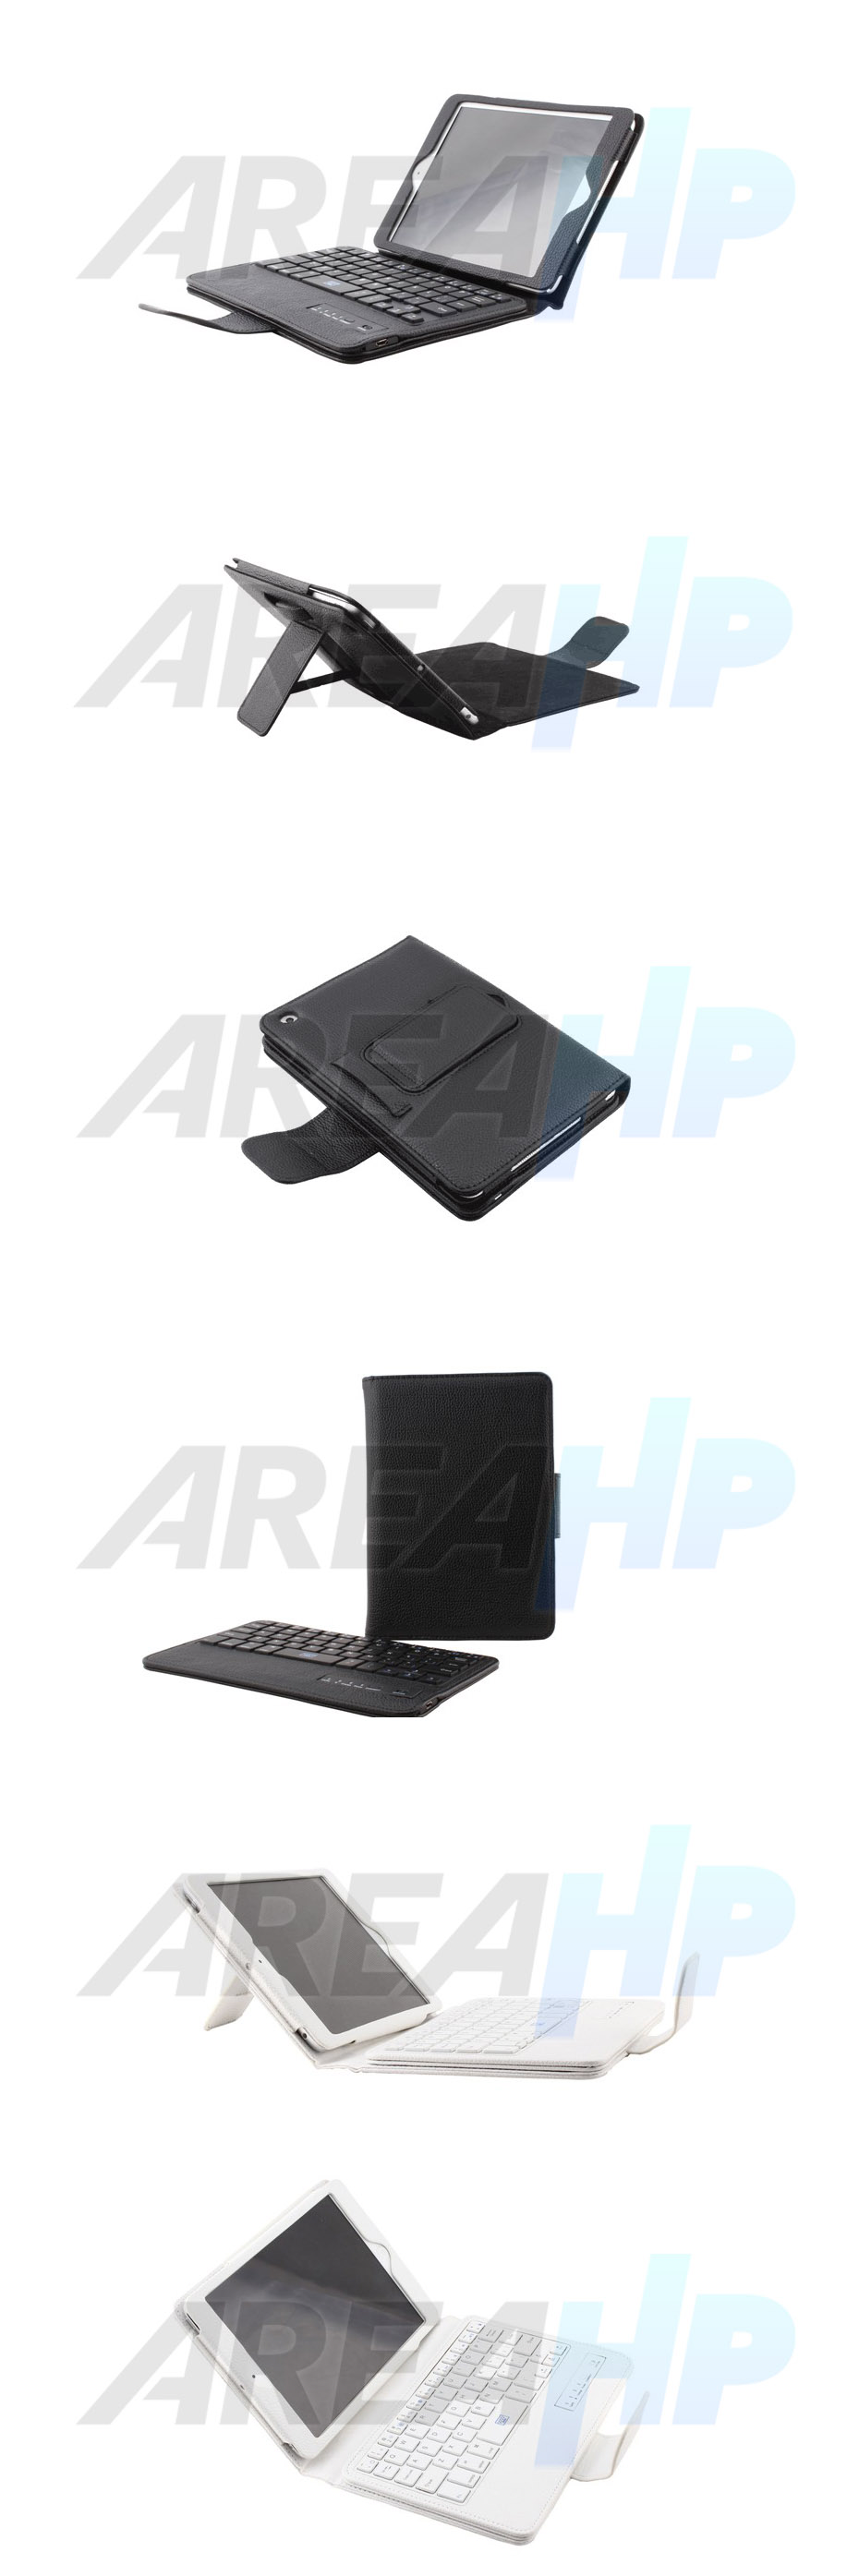 Removable Keyboard Leather Case for iPad Mini 1, 2, 3 Overview